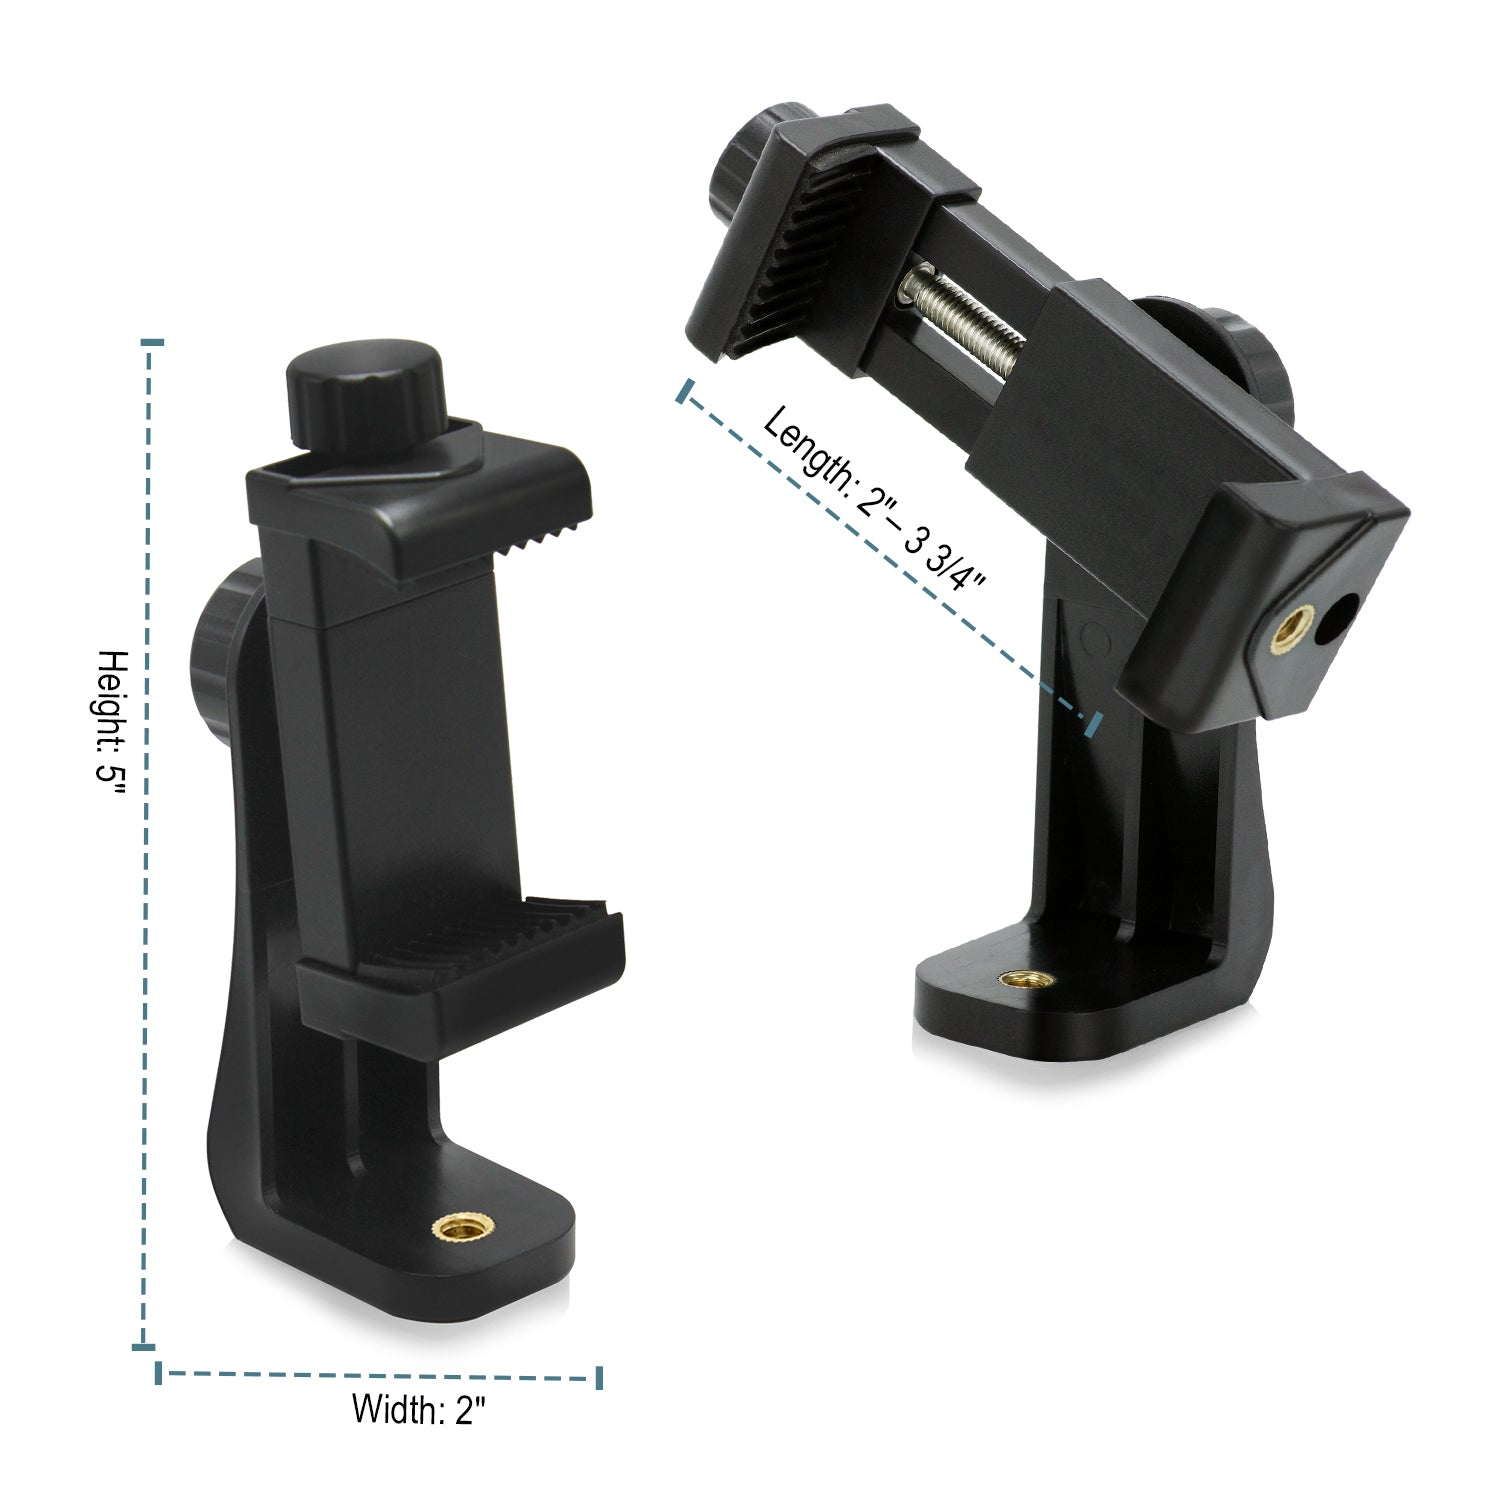 Loadstone Studio, Universal Smartphone Tripod Mount Adapters, Fits iPhone, Samsung, and most Phones, Rotates Vertically and Horizontally, Adjustable Width Soft Clamp, WMLS4528